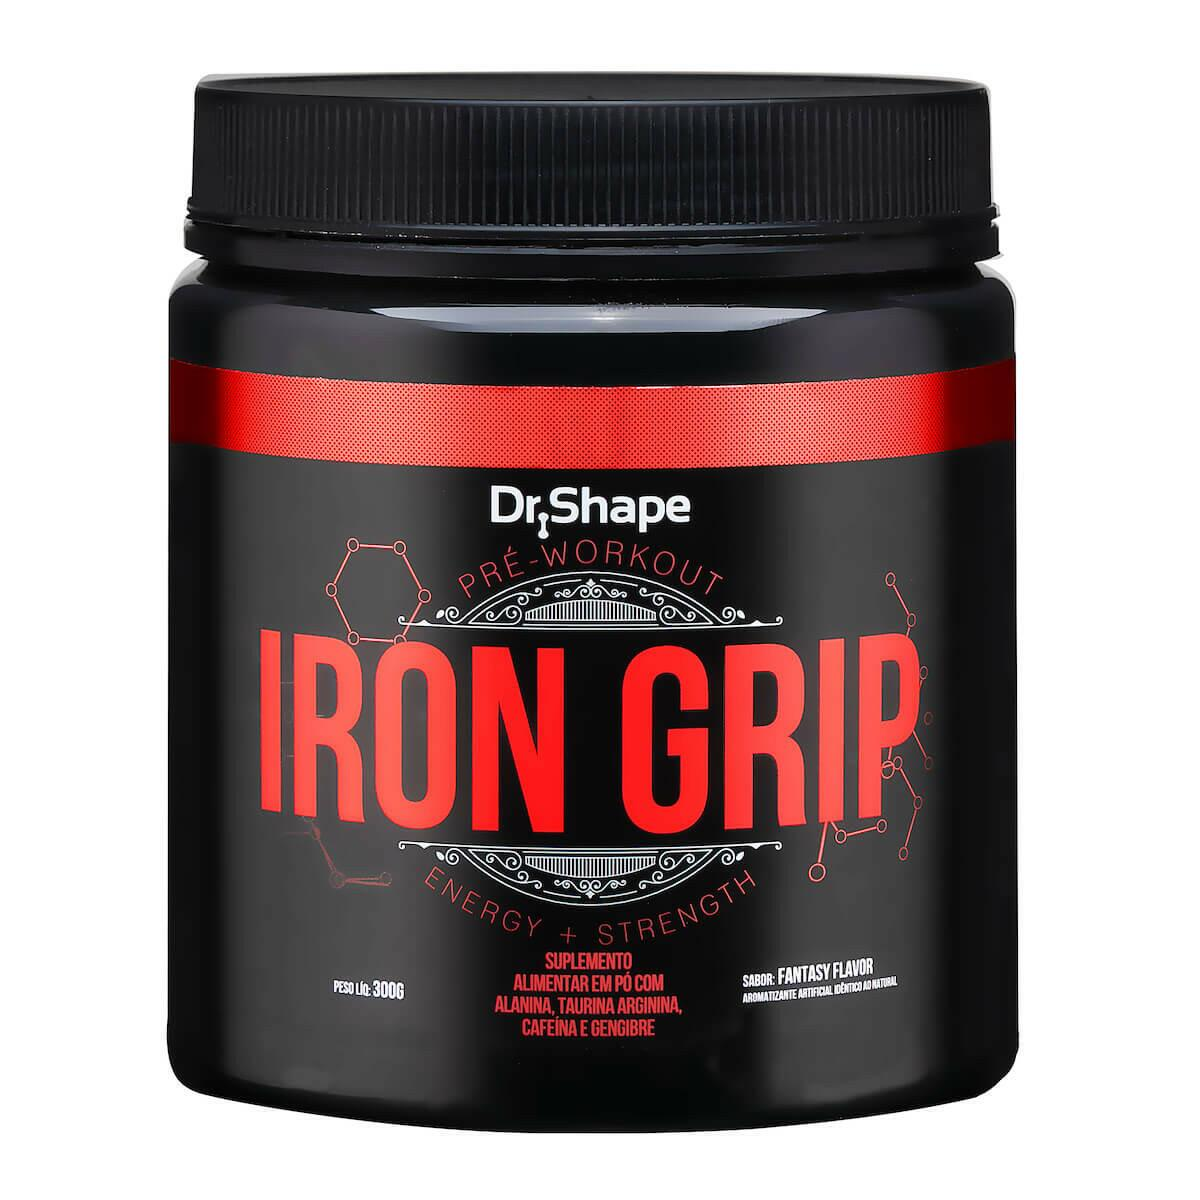 Iron Grip - 300g - Dr. Shape